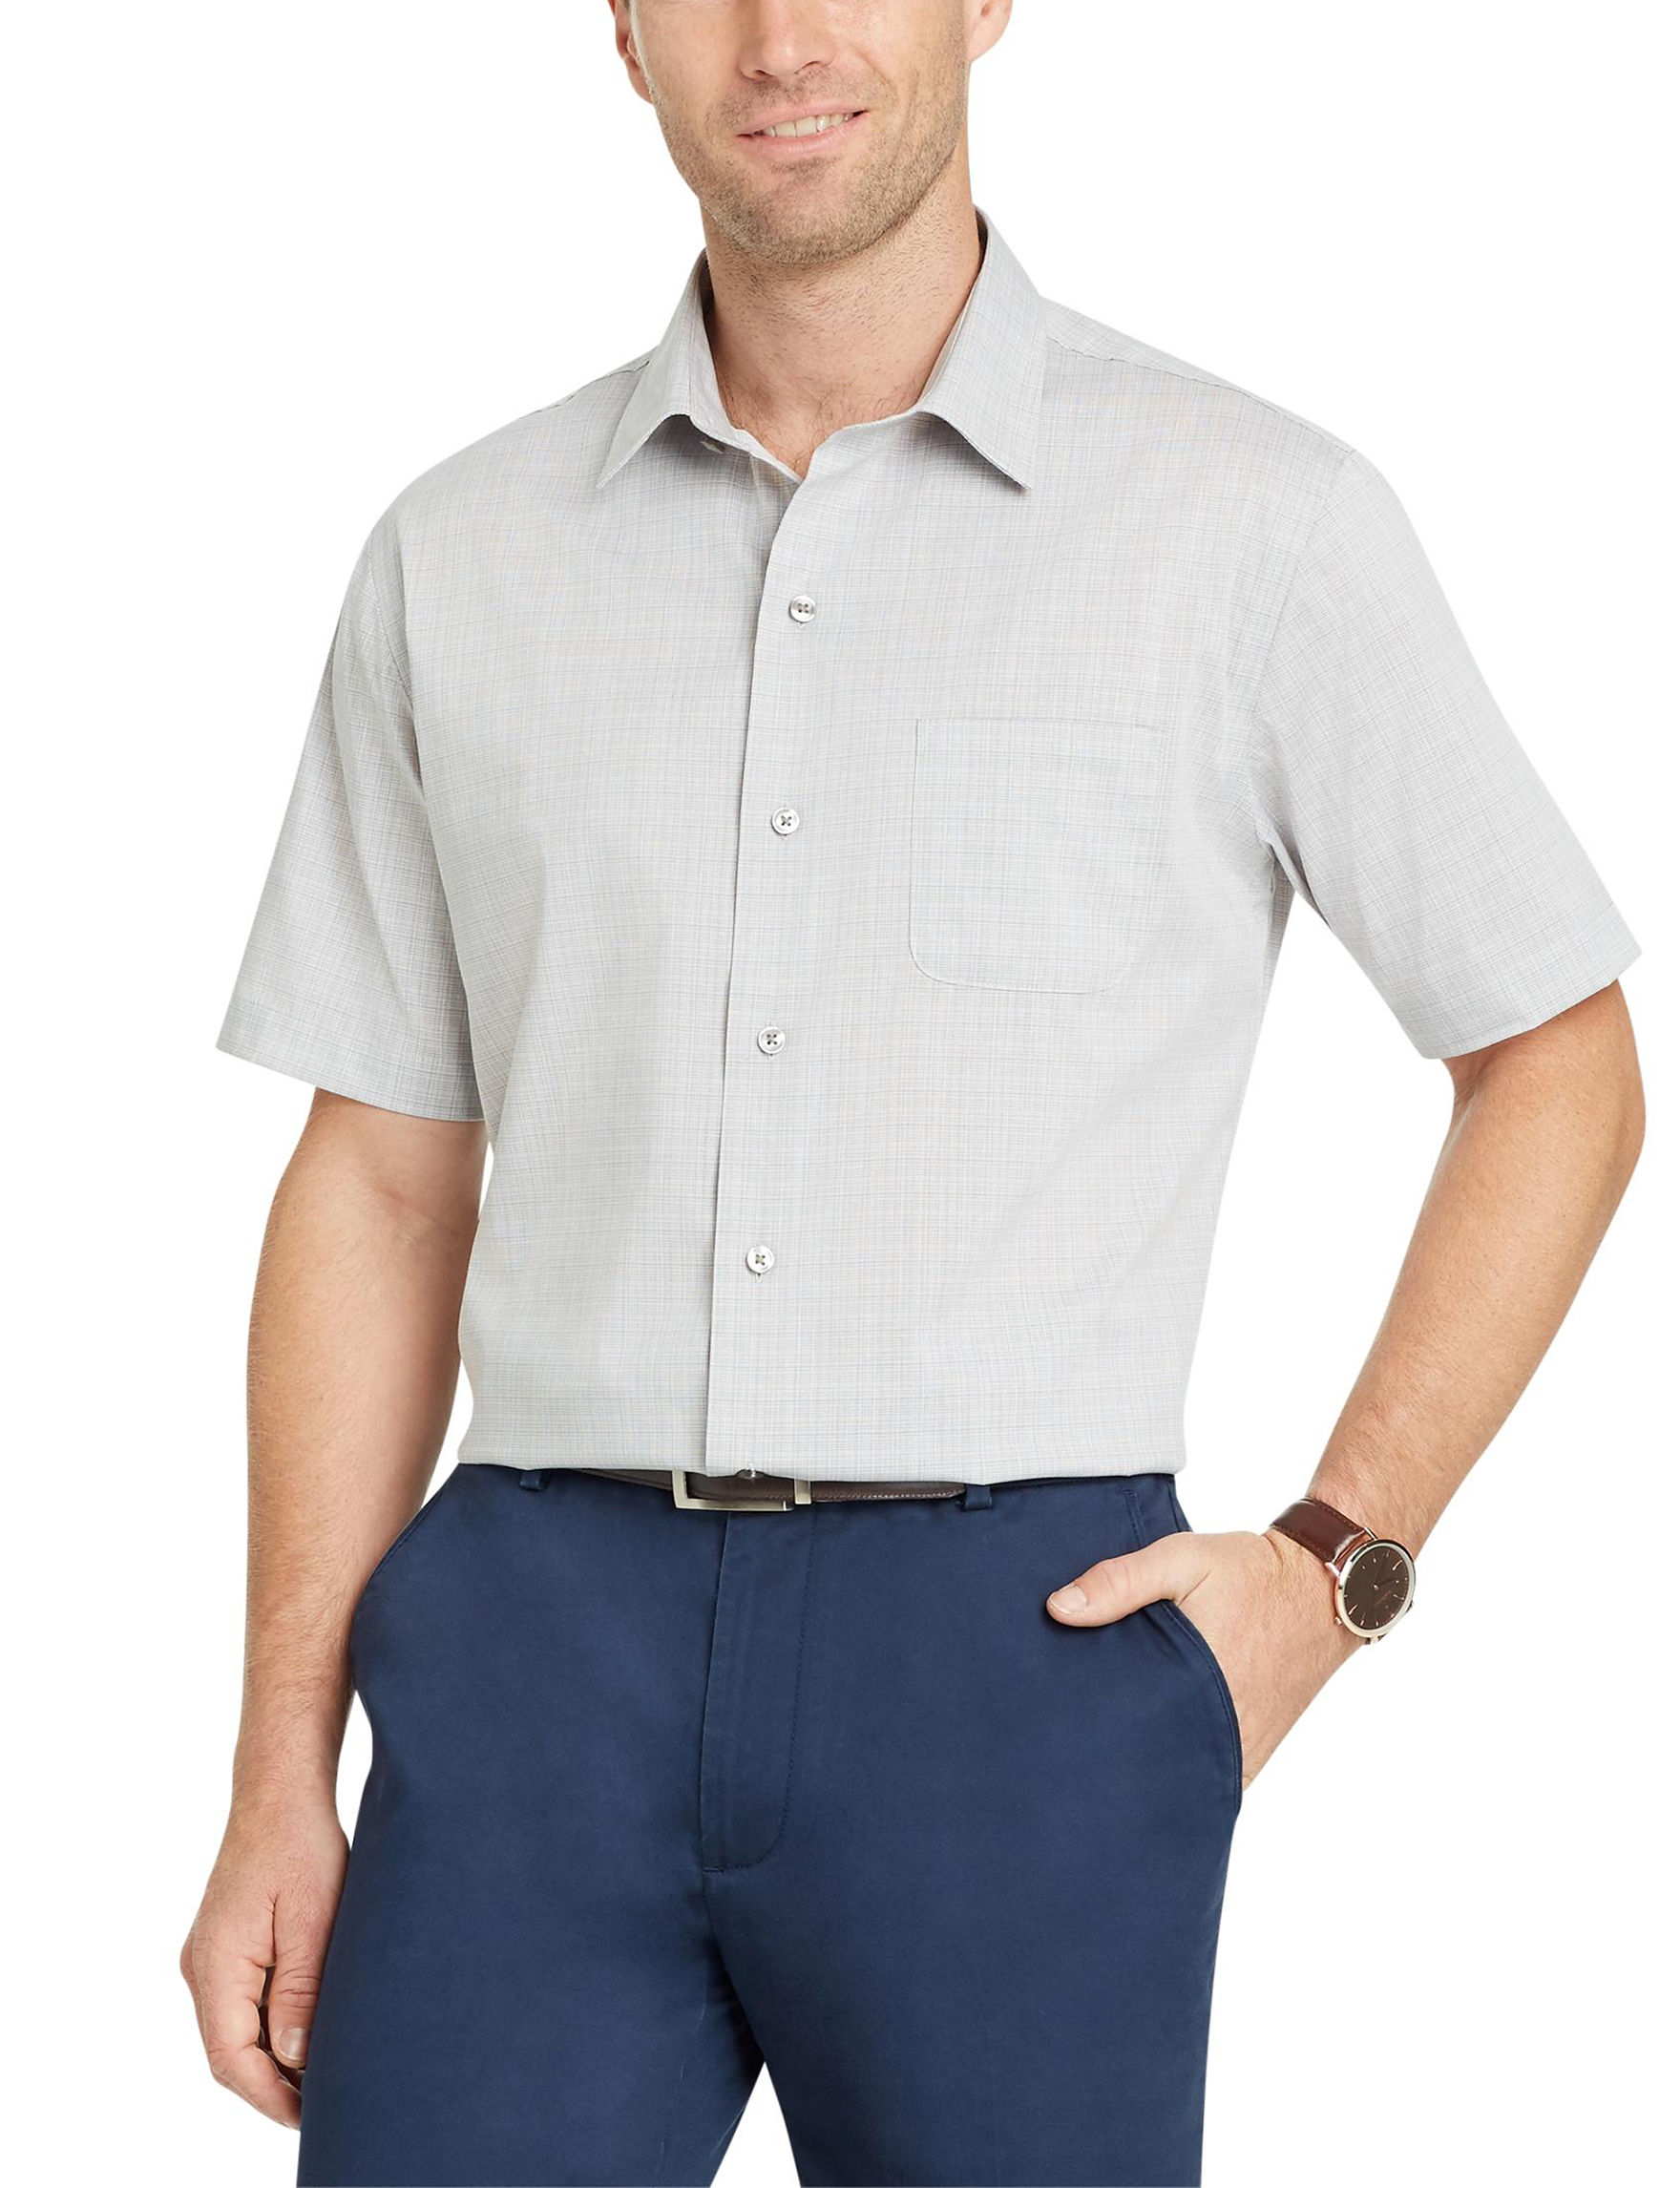 Van Heusen Grey Casual Button Down Shirts